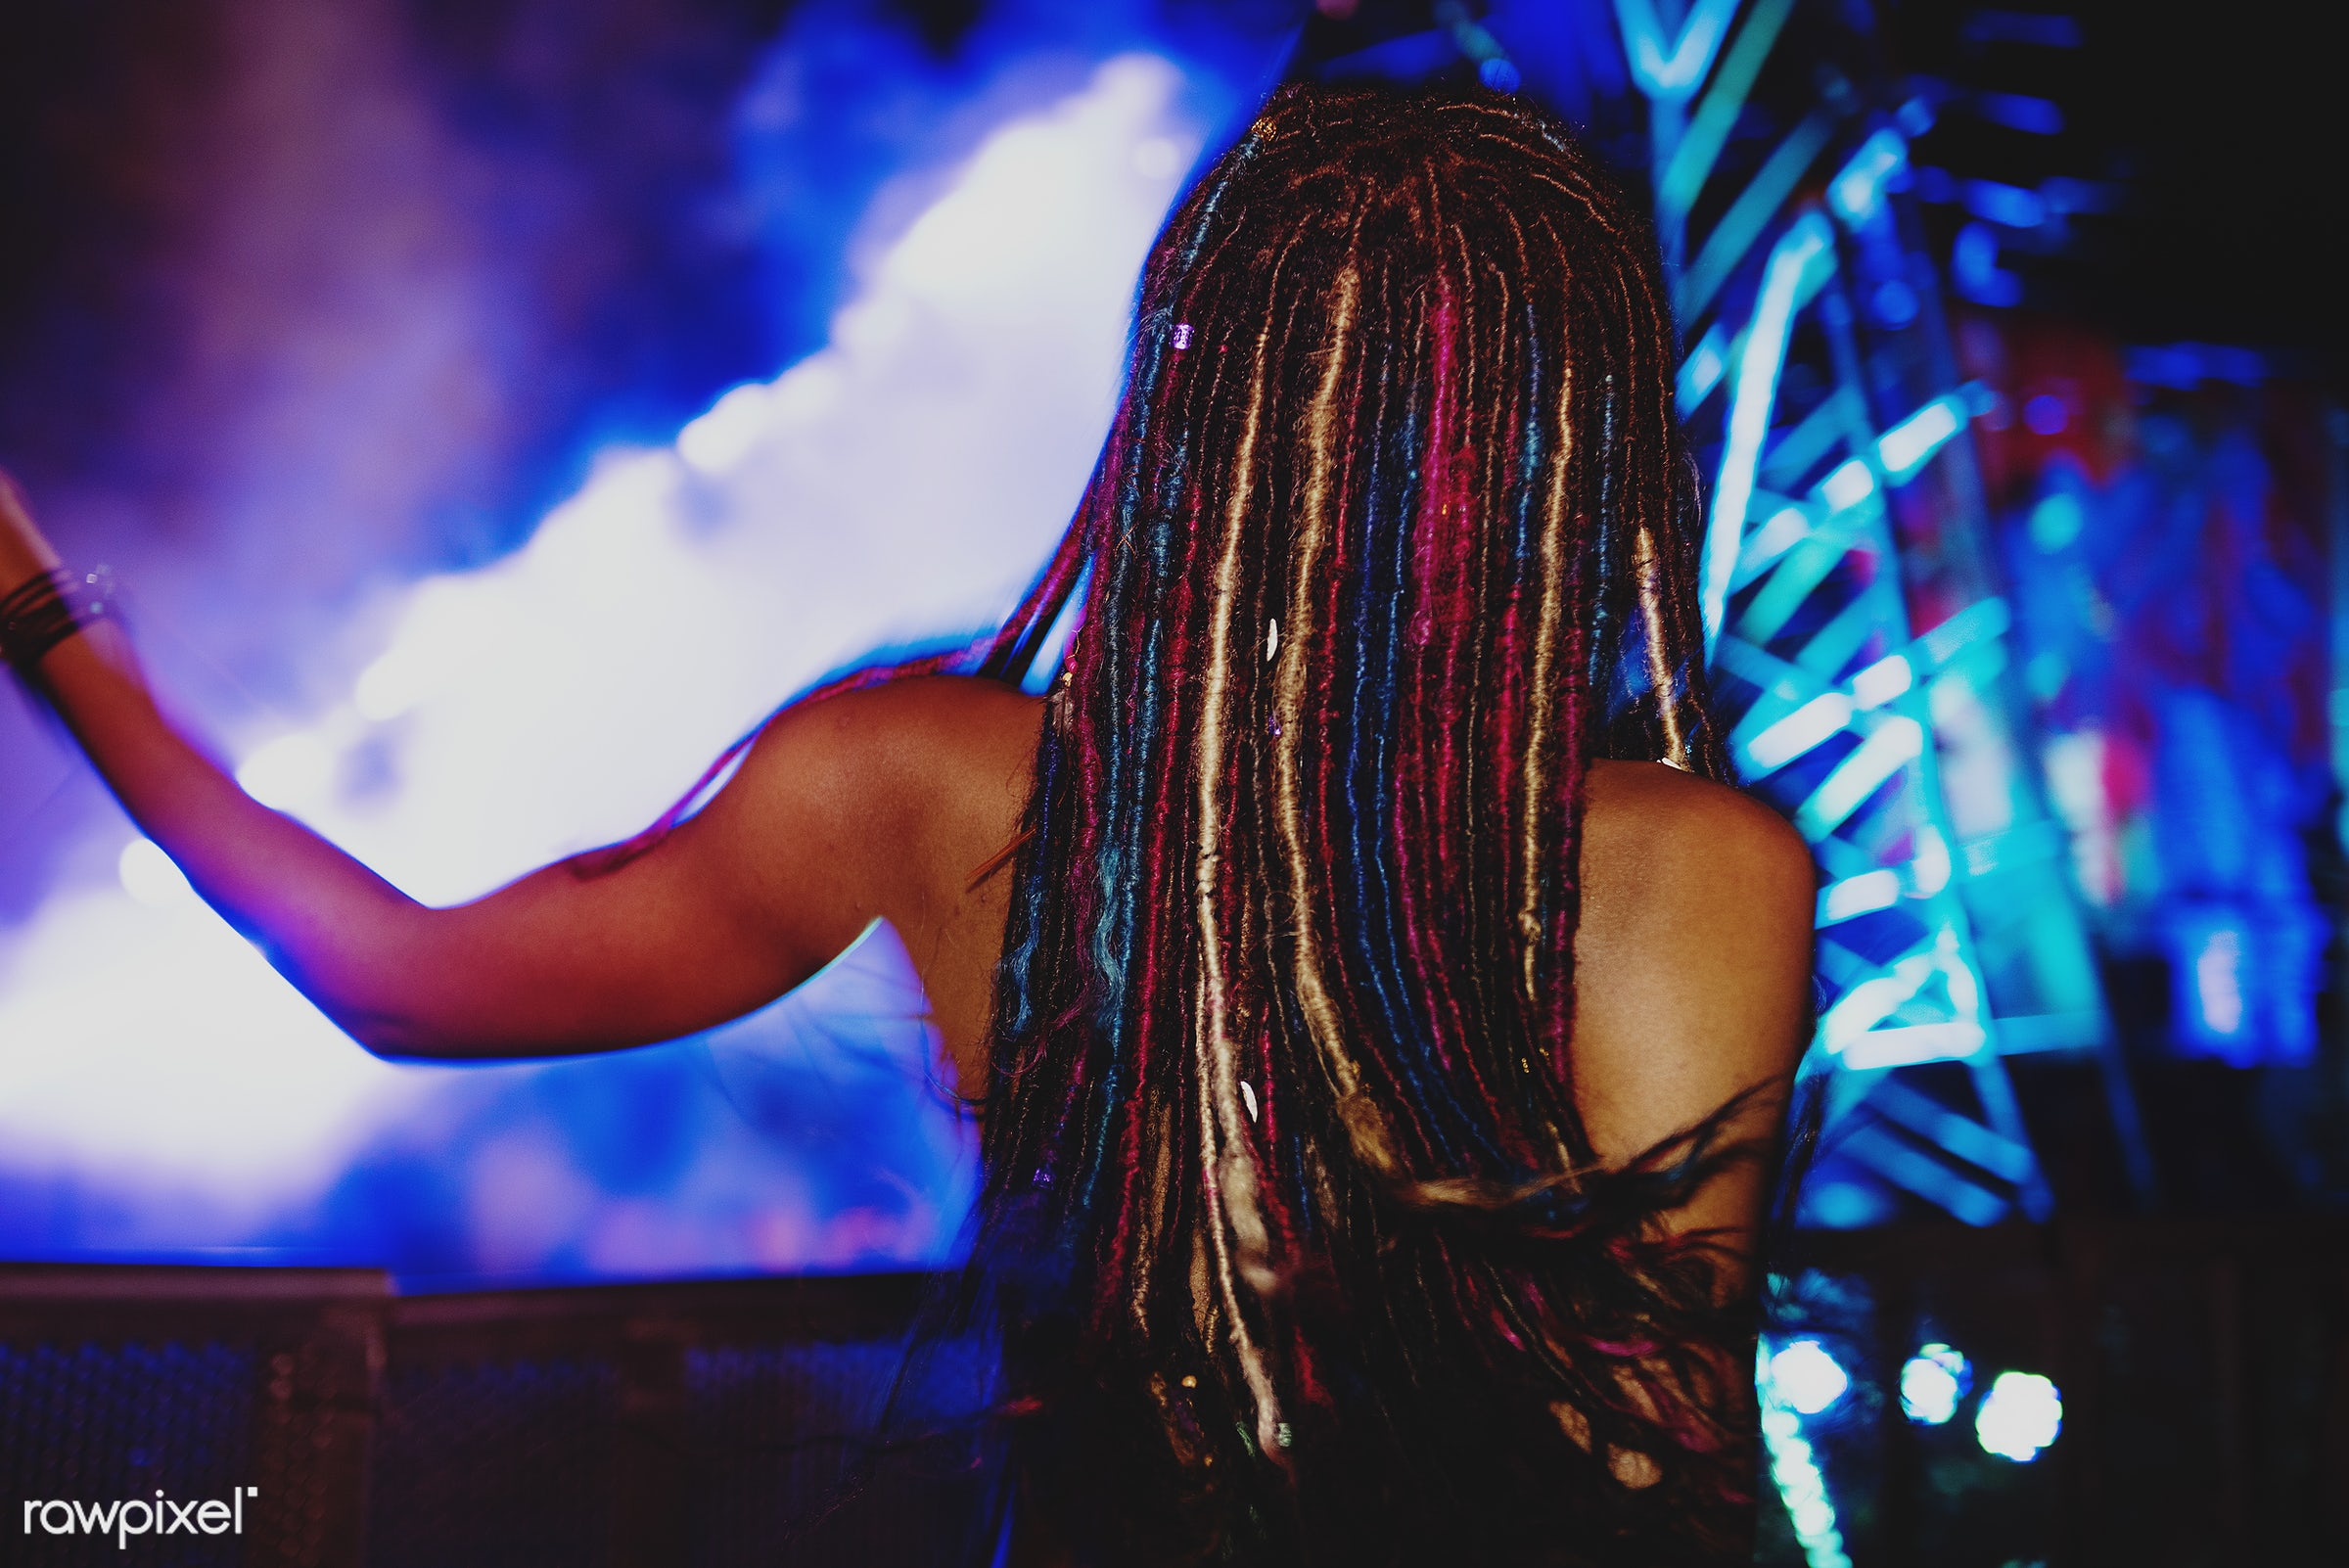 dj, adult, applauding, audience, audio, back, cheer, cheerful, club, clubbing, concert, crowd, dance, dancing, edm,...